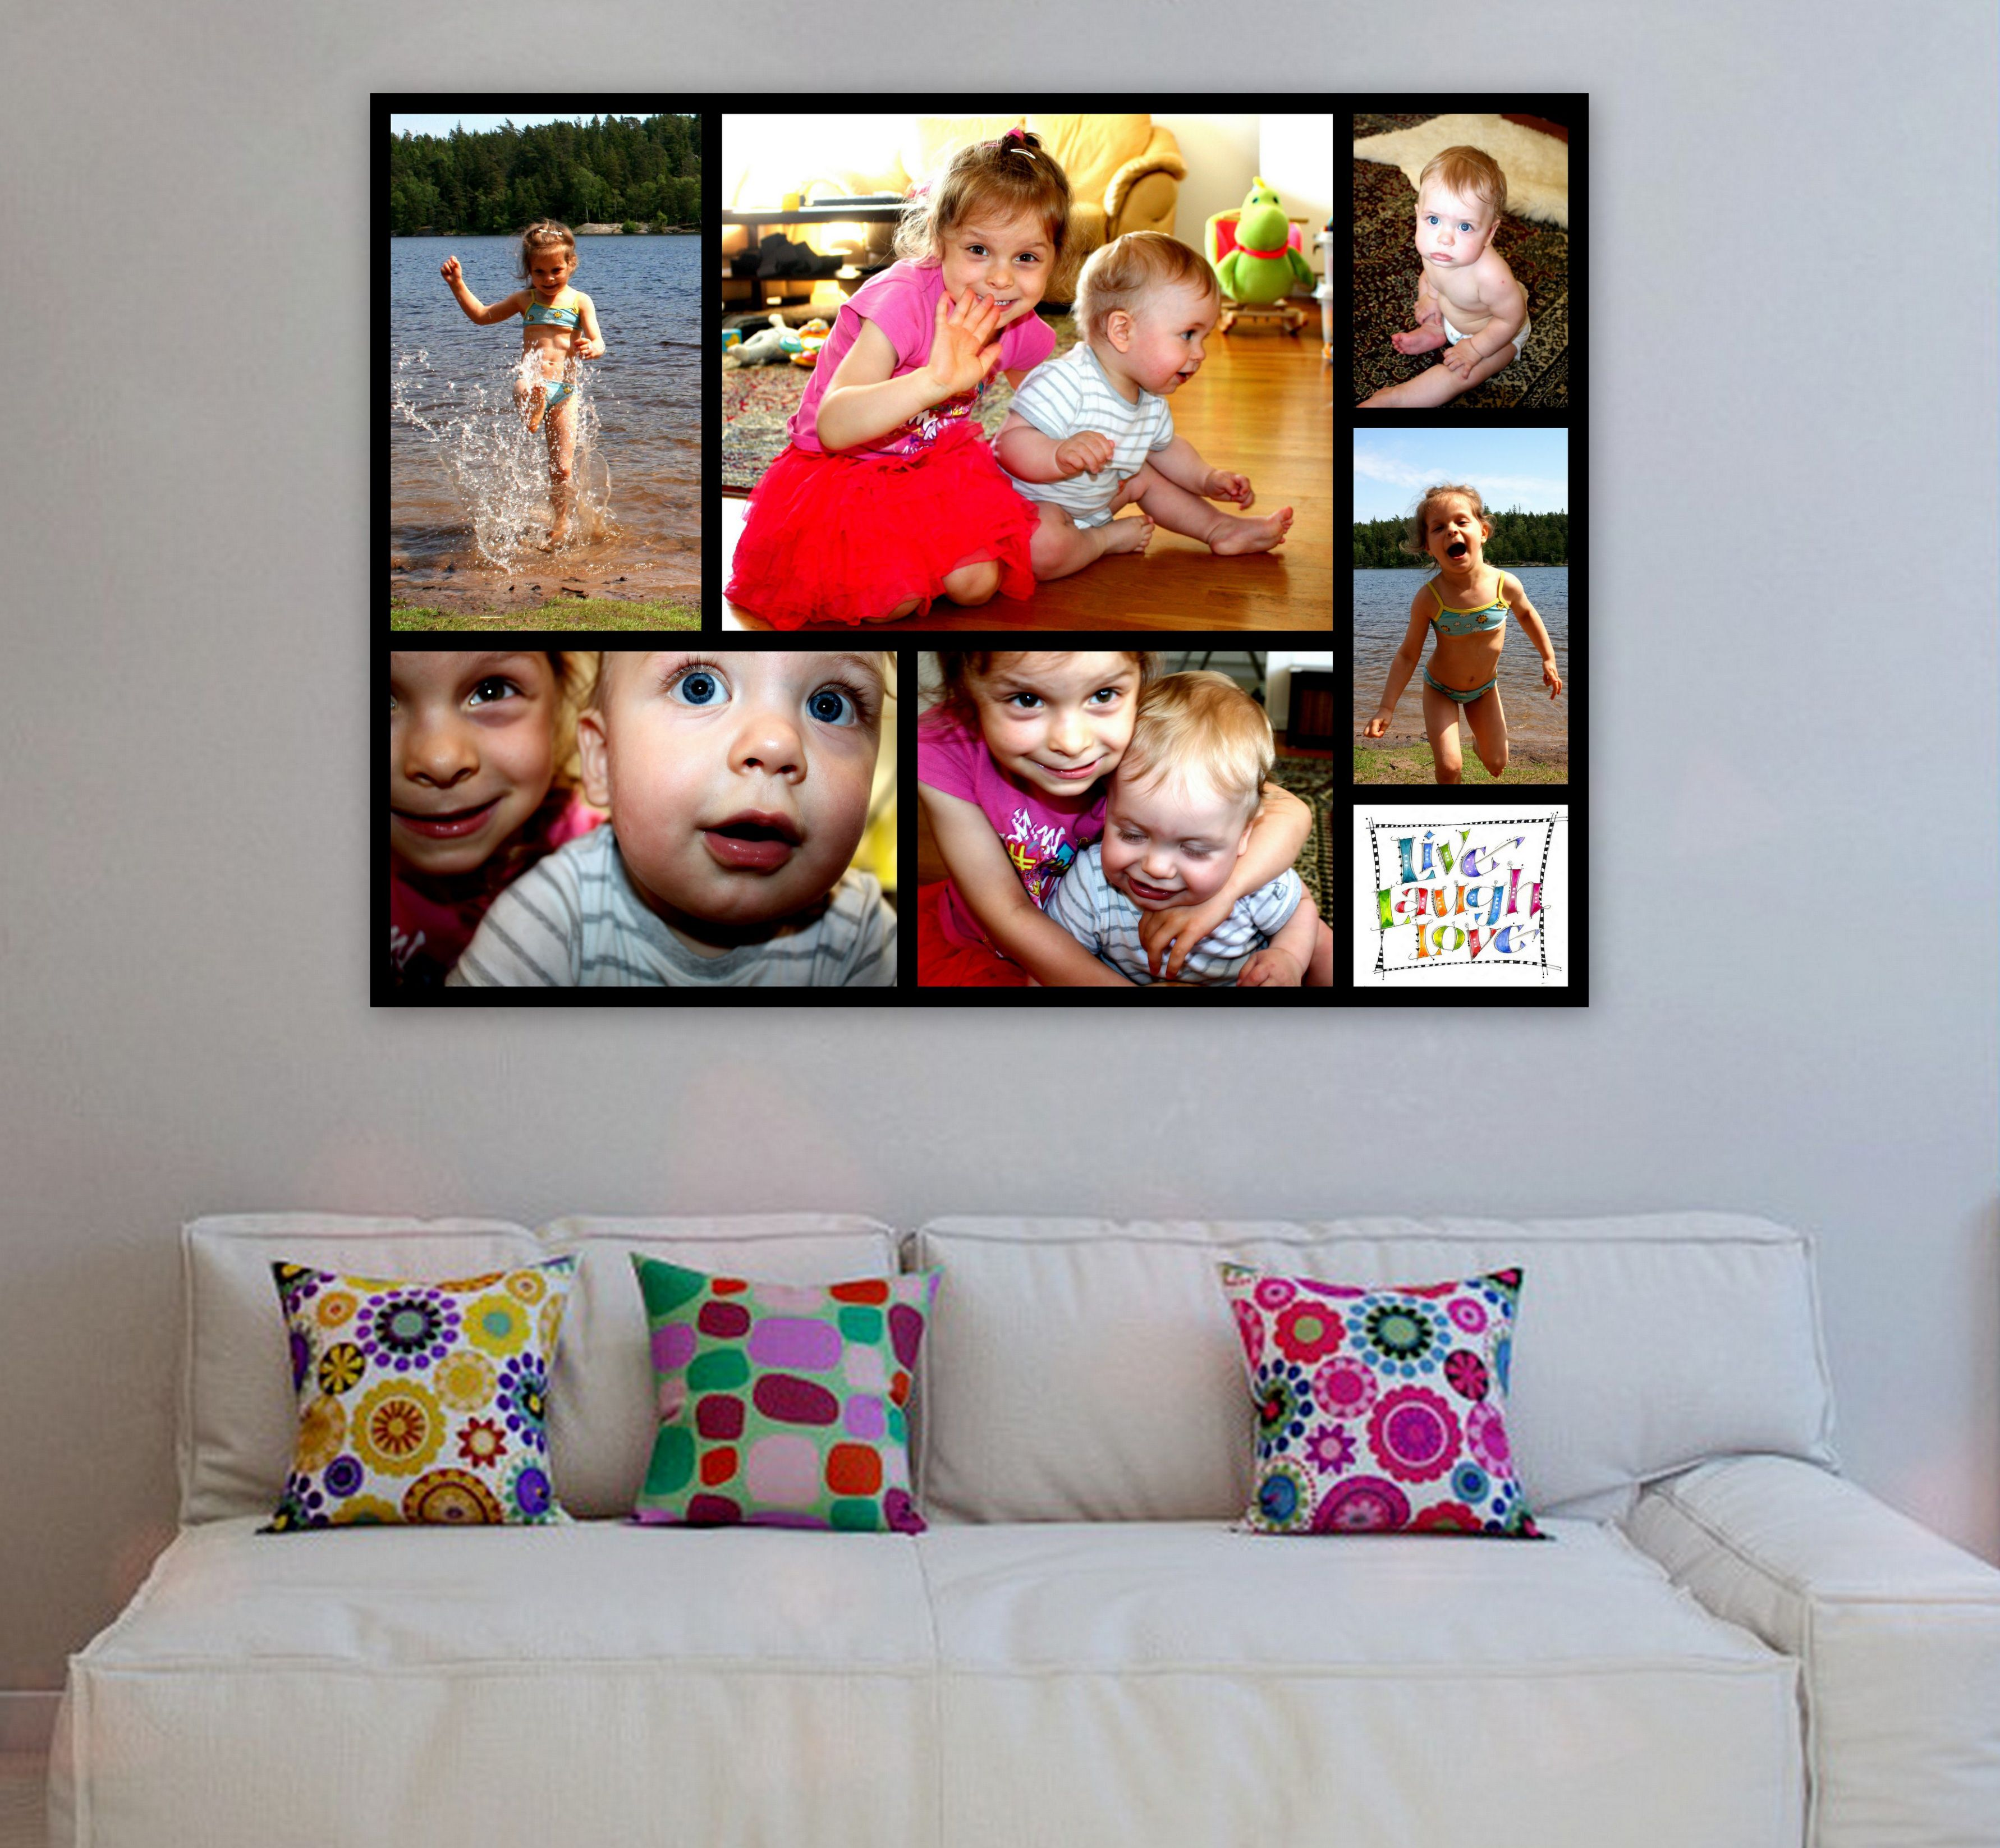 Childrens Room Wall Decor, Handcrafted Customize Canvas Print Wall Art